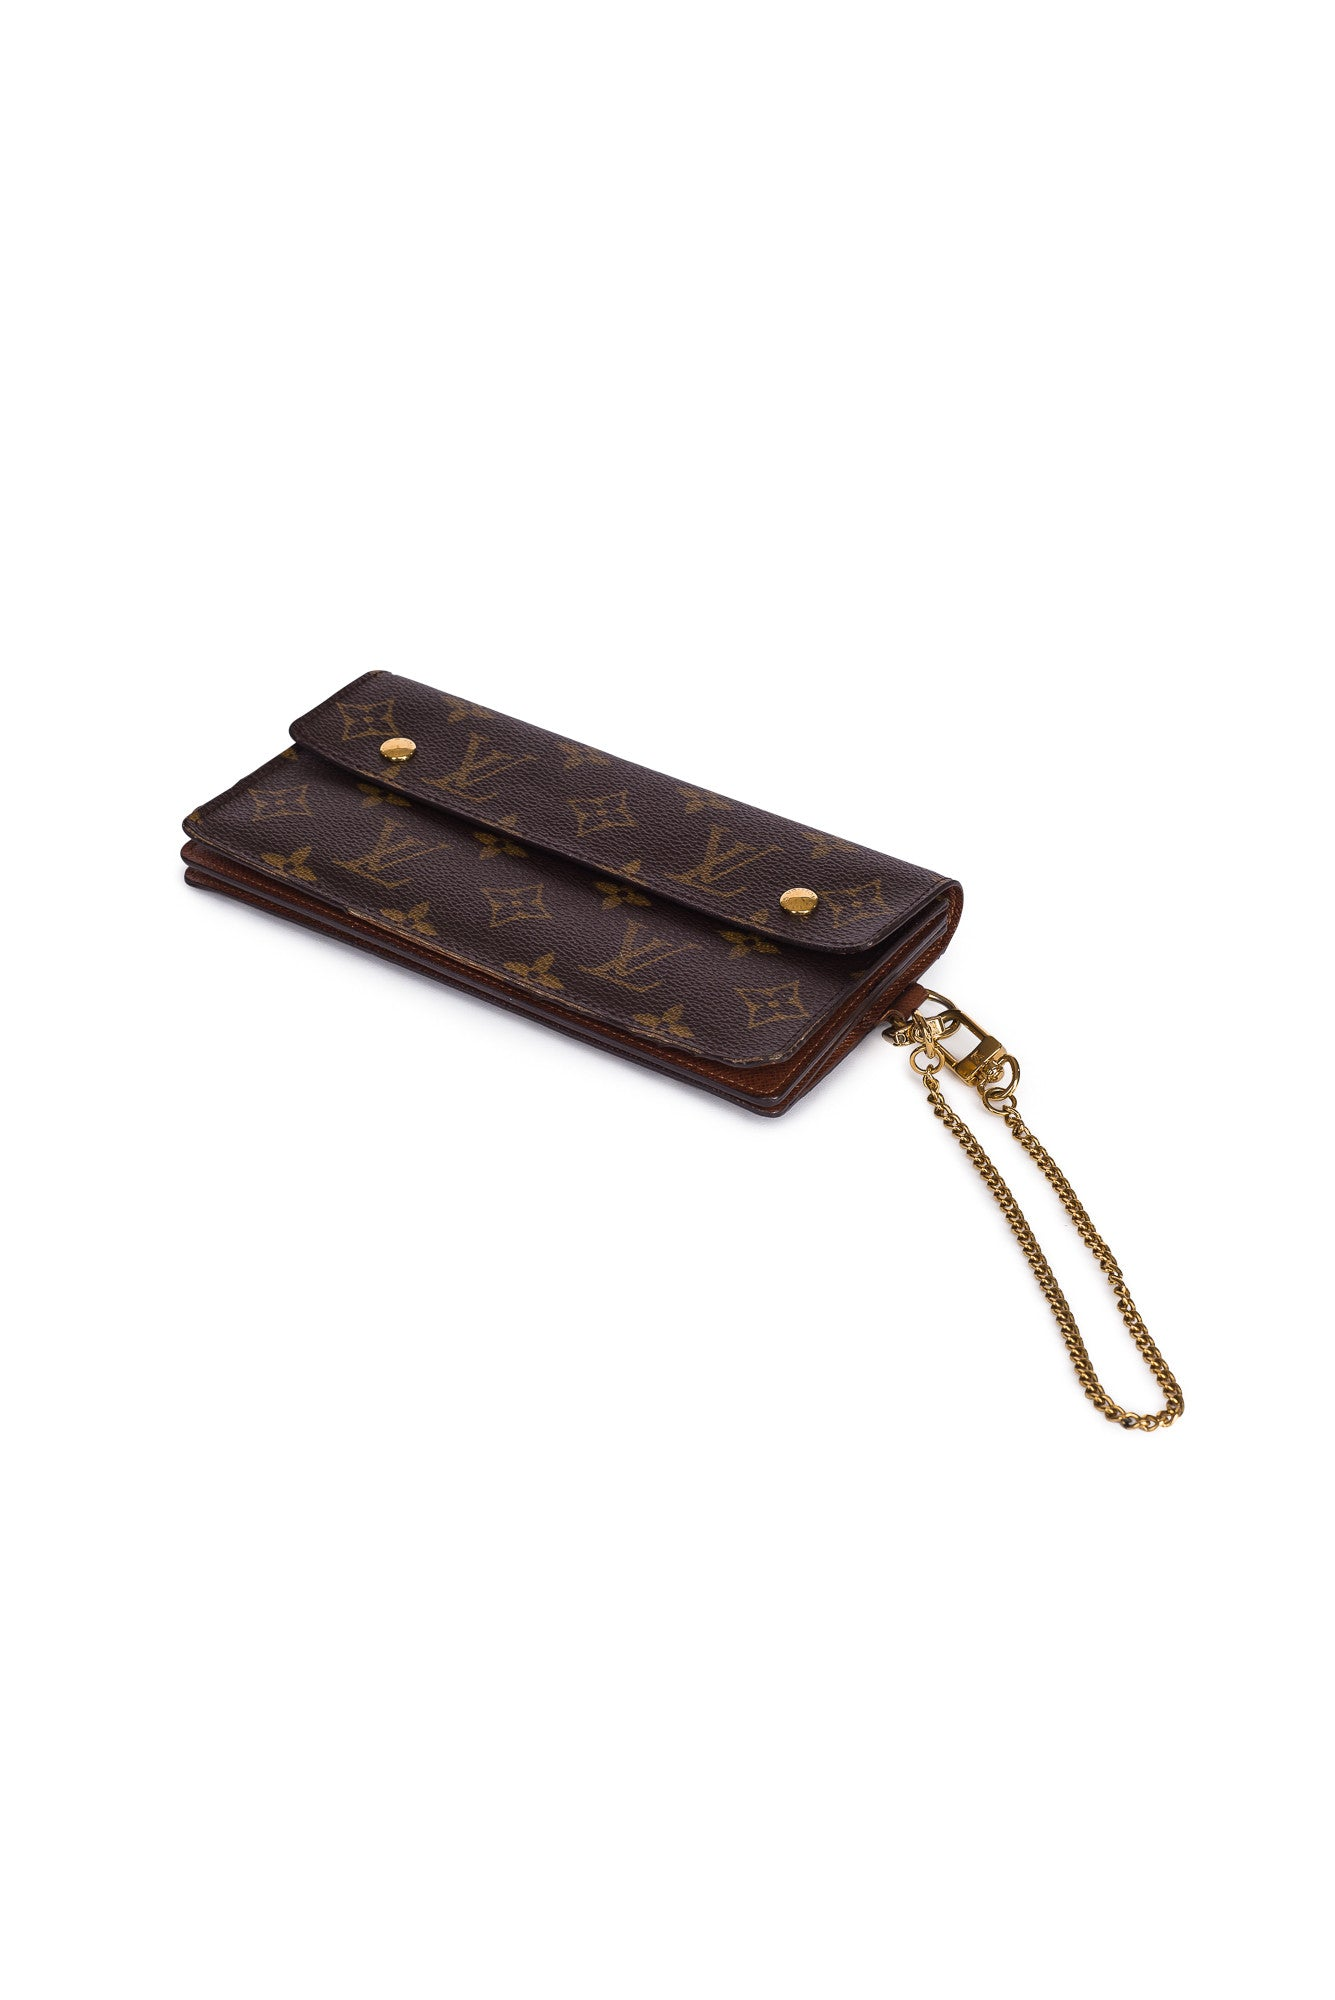 LOUIS VUITTON Portefeiulle Akorudion Monogram  Bifold Long Wallet